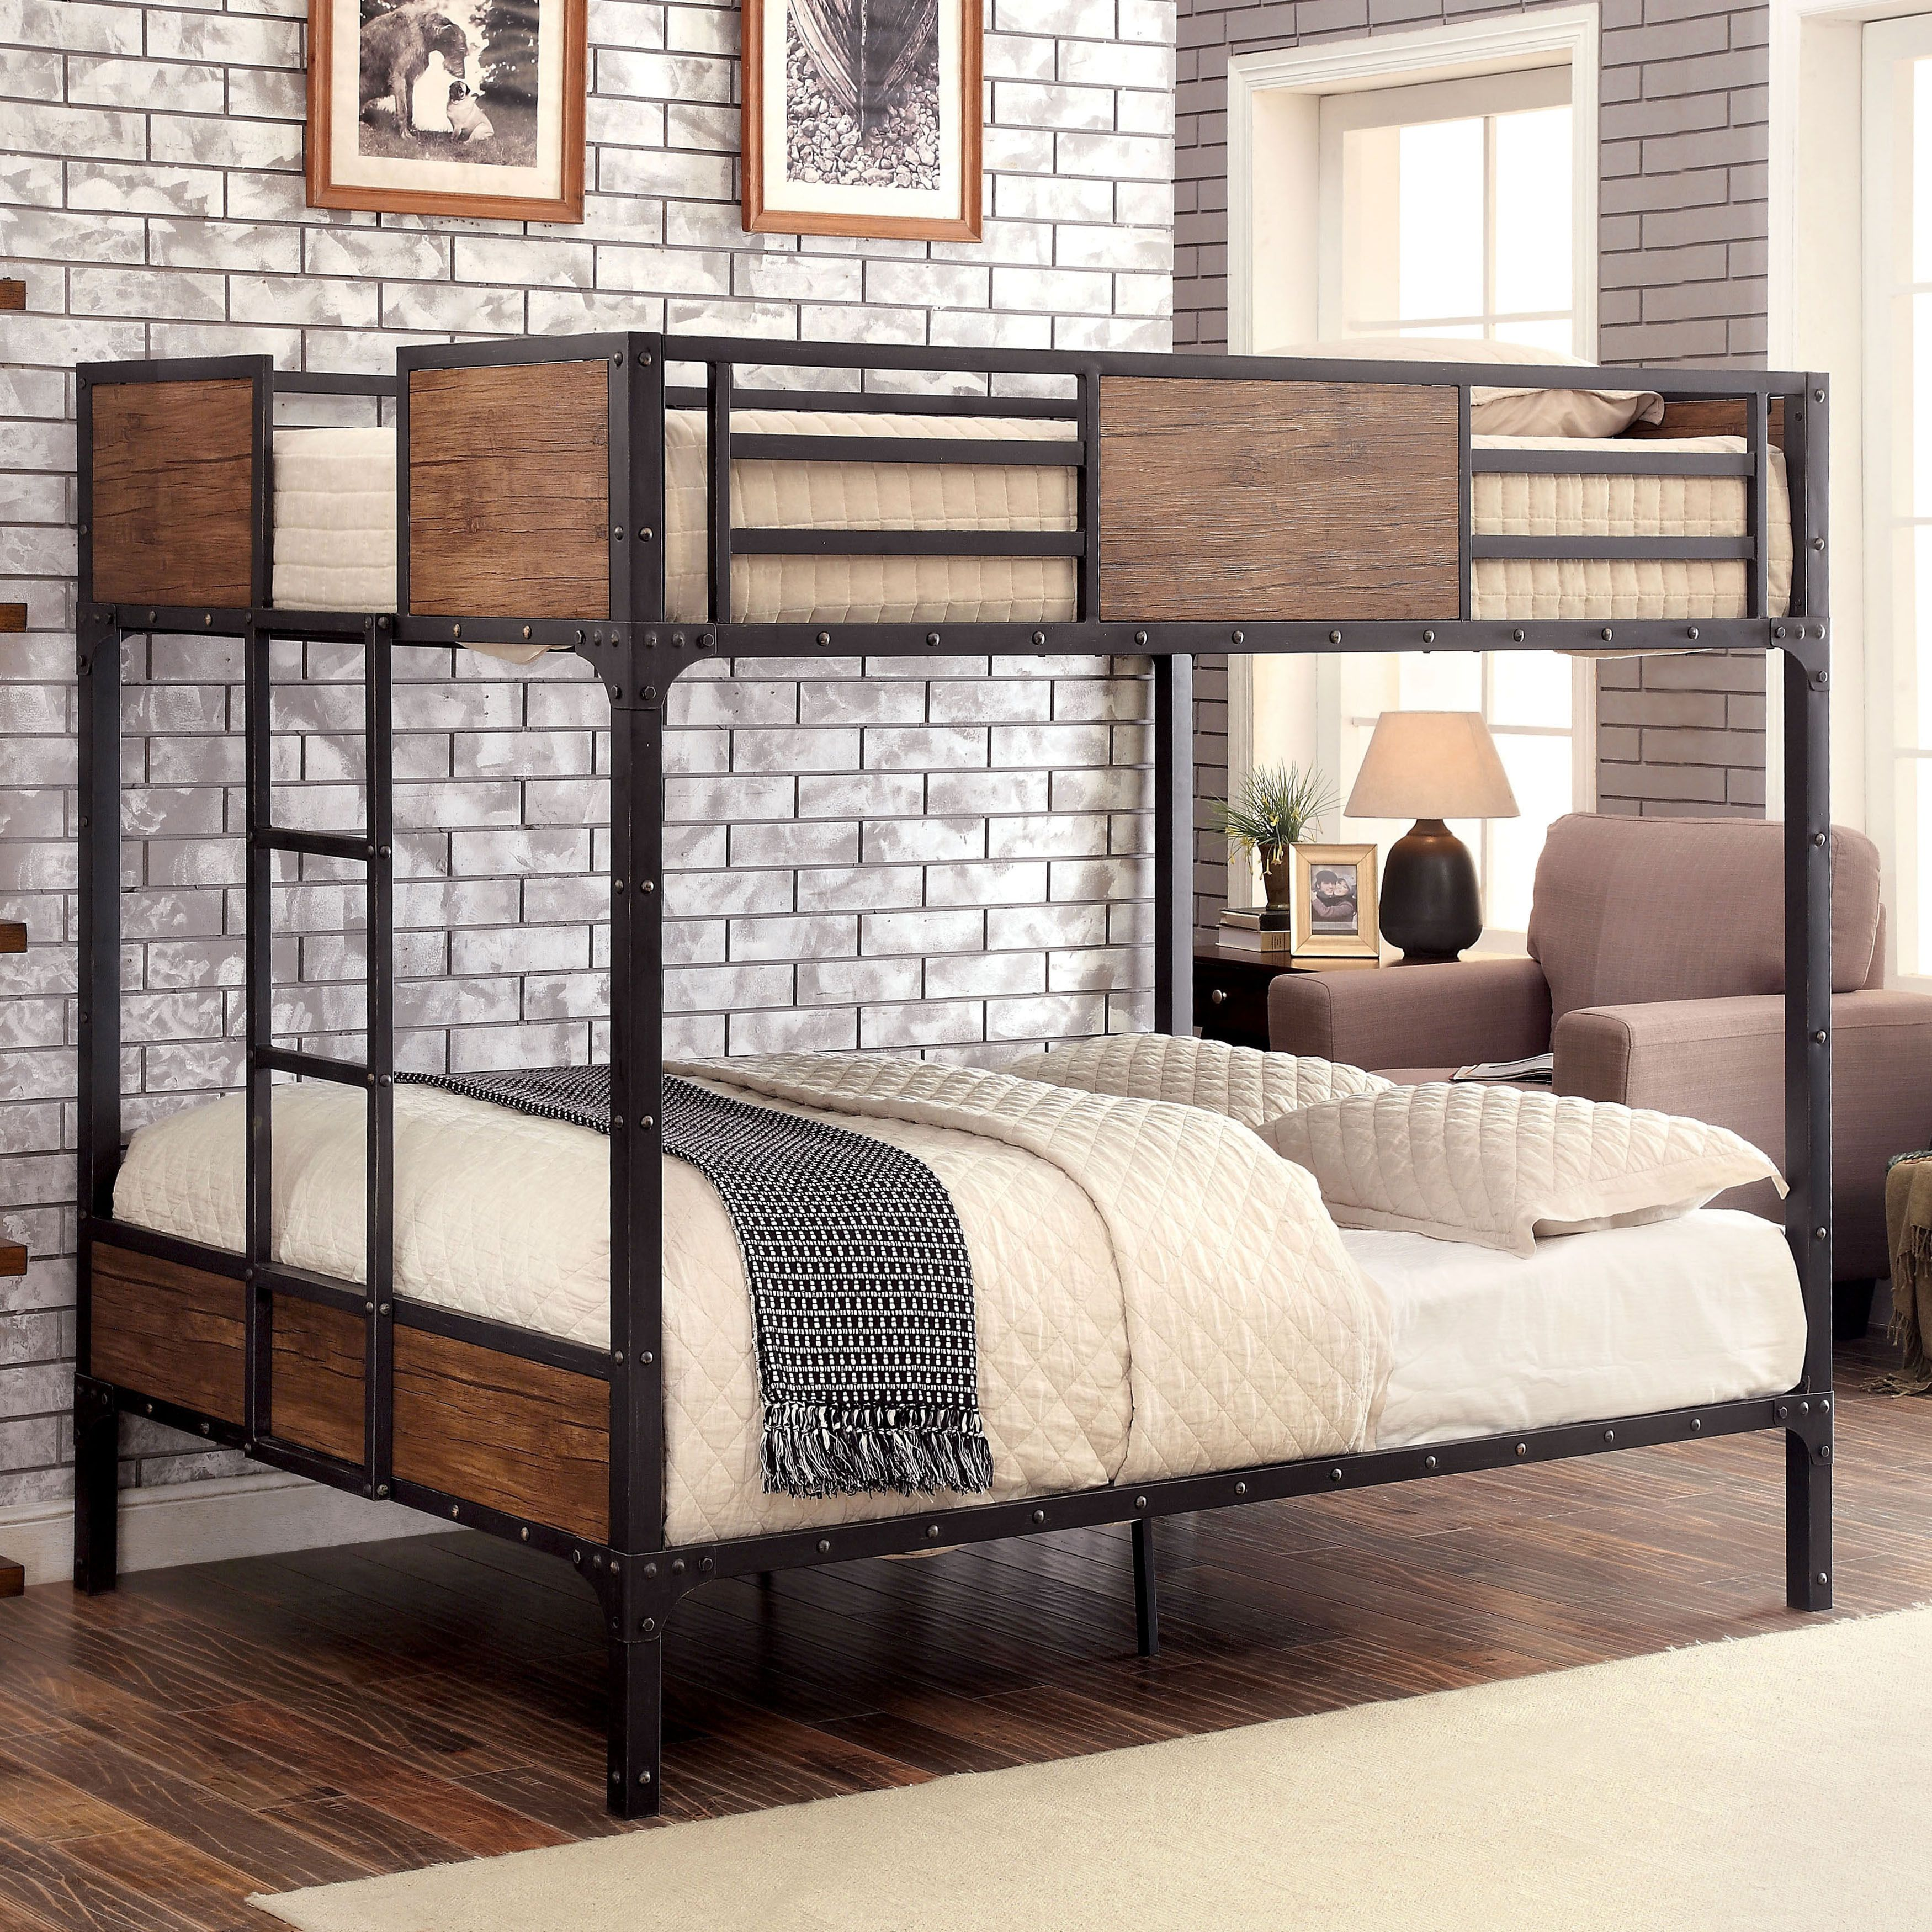 An industrial piece in both design and function, this bunk bed ...